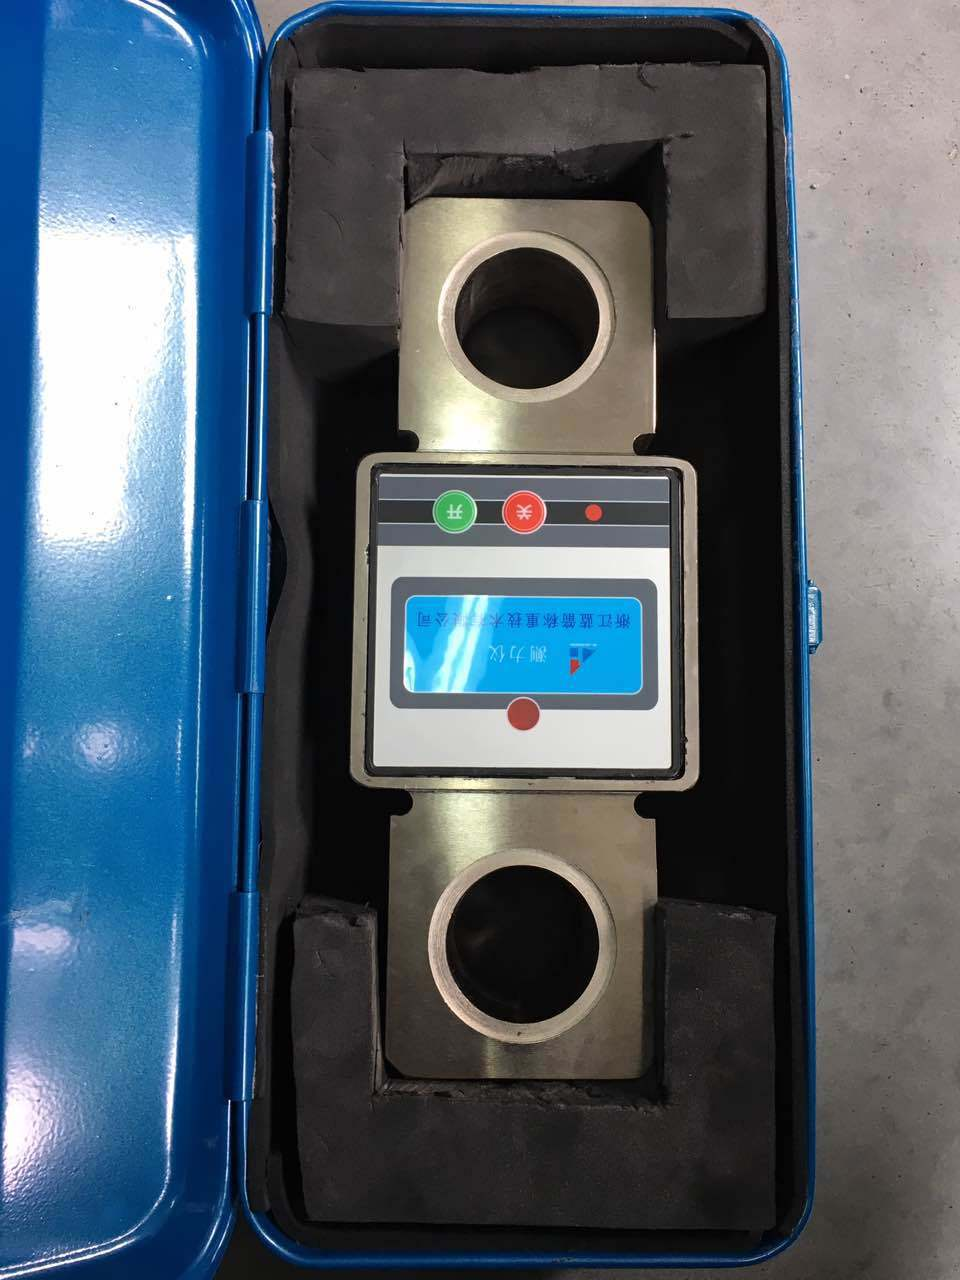 Cly-as Steel Dynamometer (CLY-AS)